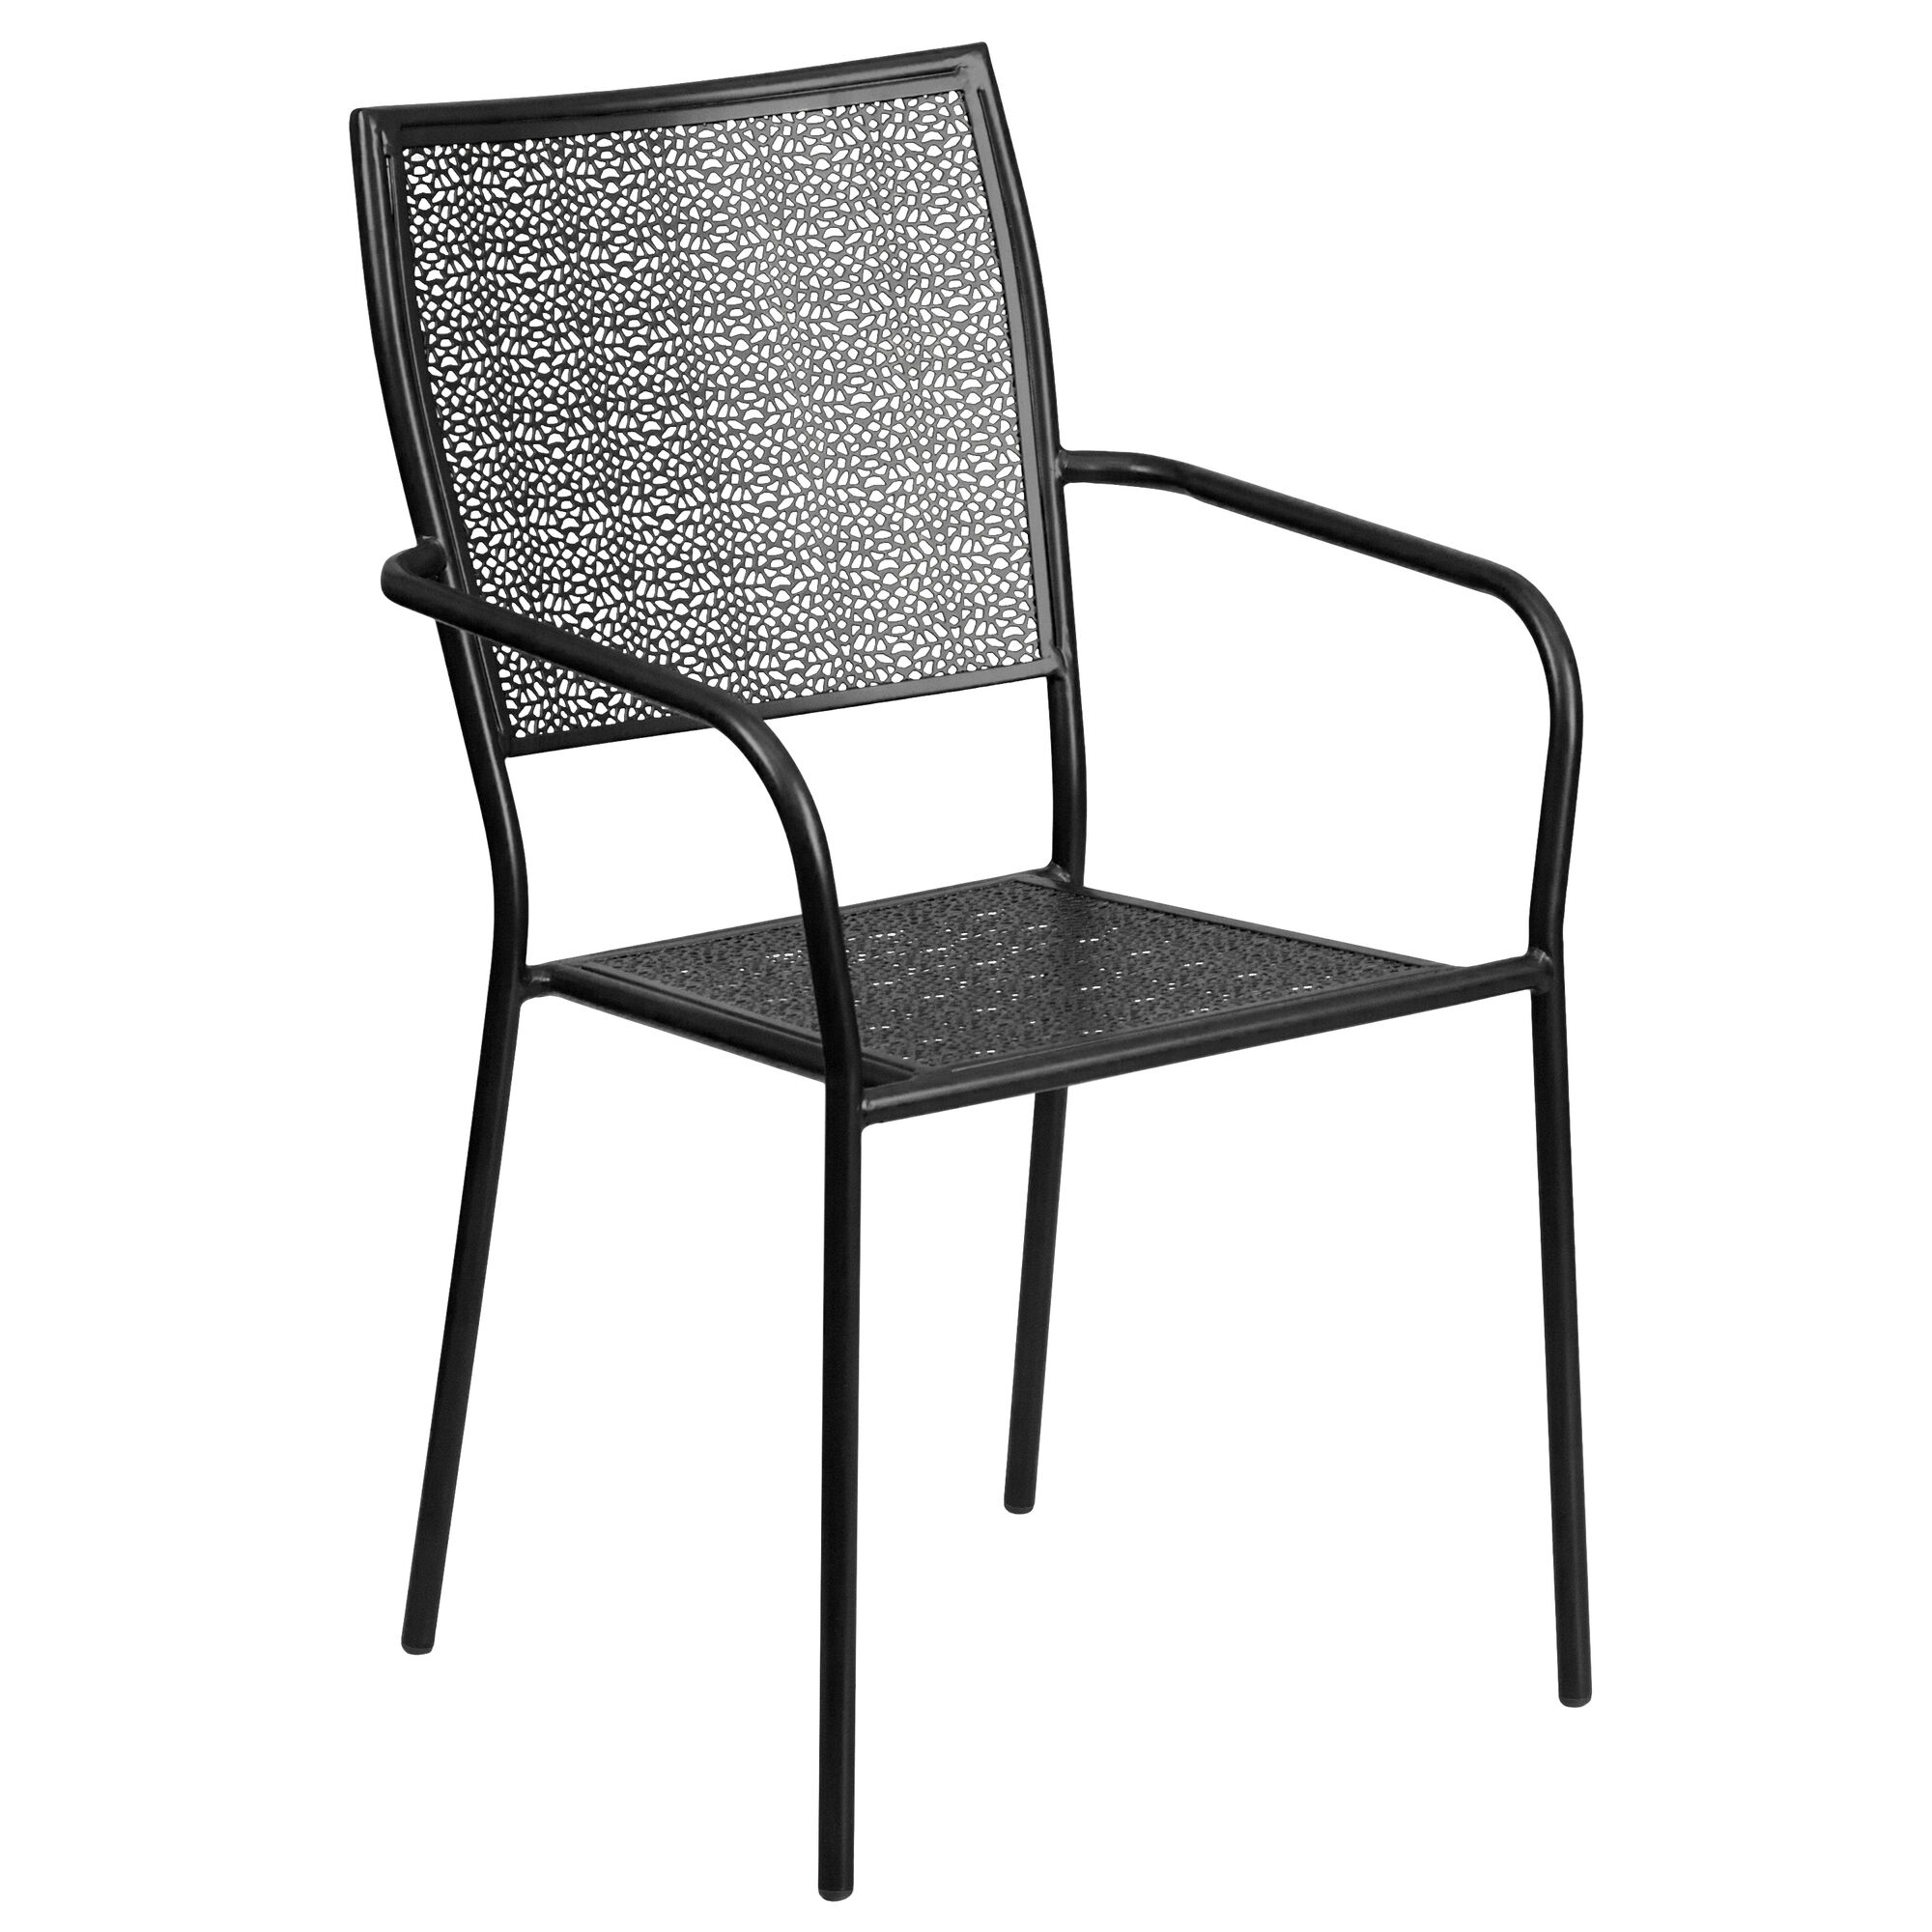 Swell Commercial Grade Black Indoor Outdoor Steel Patio Arm Chair With Square Back Machost Co Dining Chair Design Ideas Machostcouk